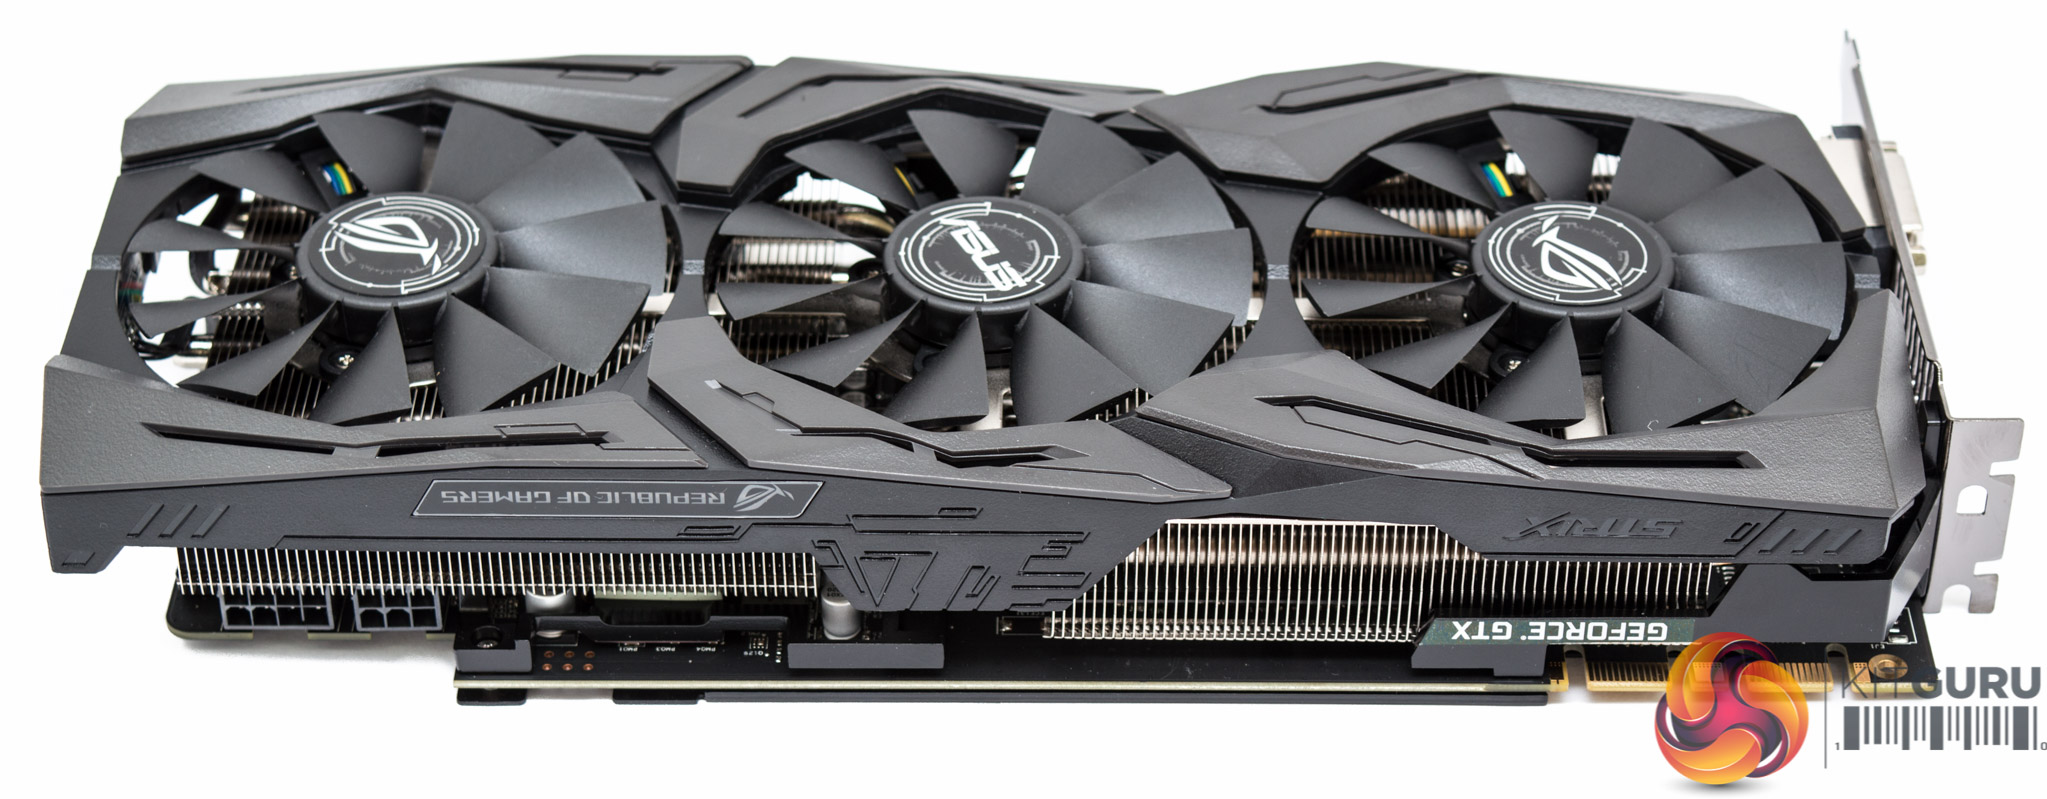 asus rog strix gtx 1080 review